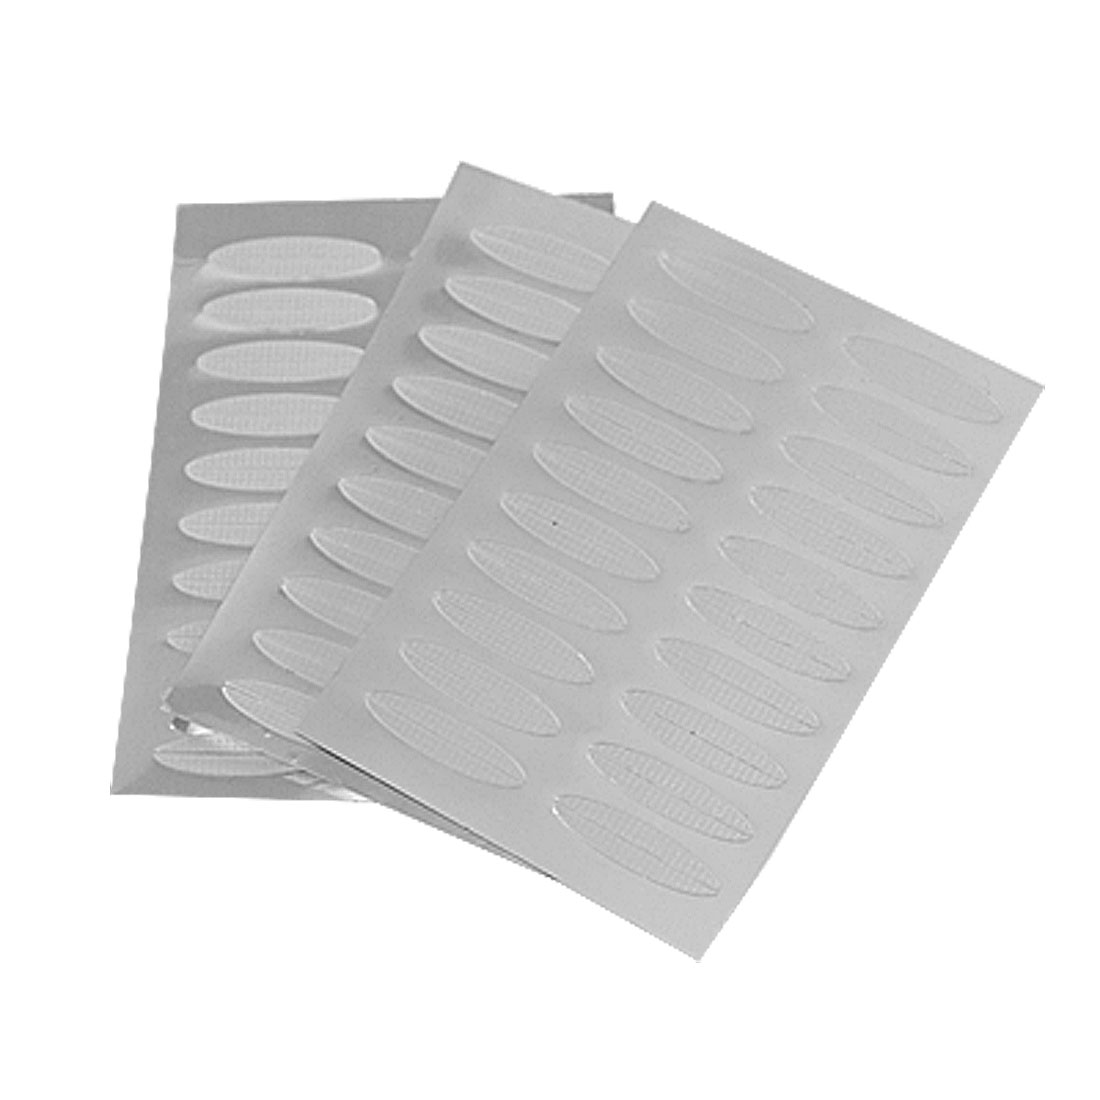 Women Soft Plastic Breathable Double Eyelid Maker Tape Sticker Clear 60 Pairs